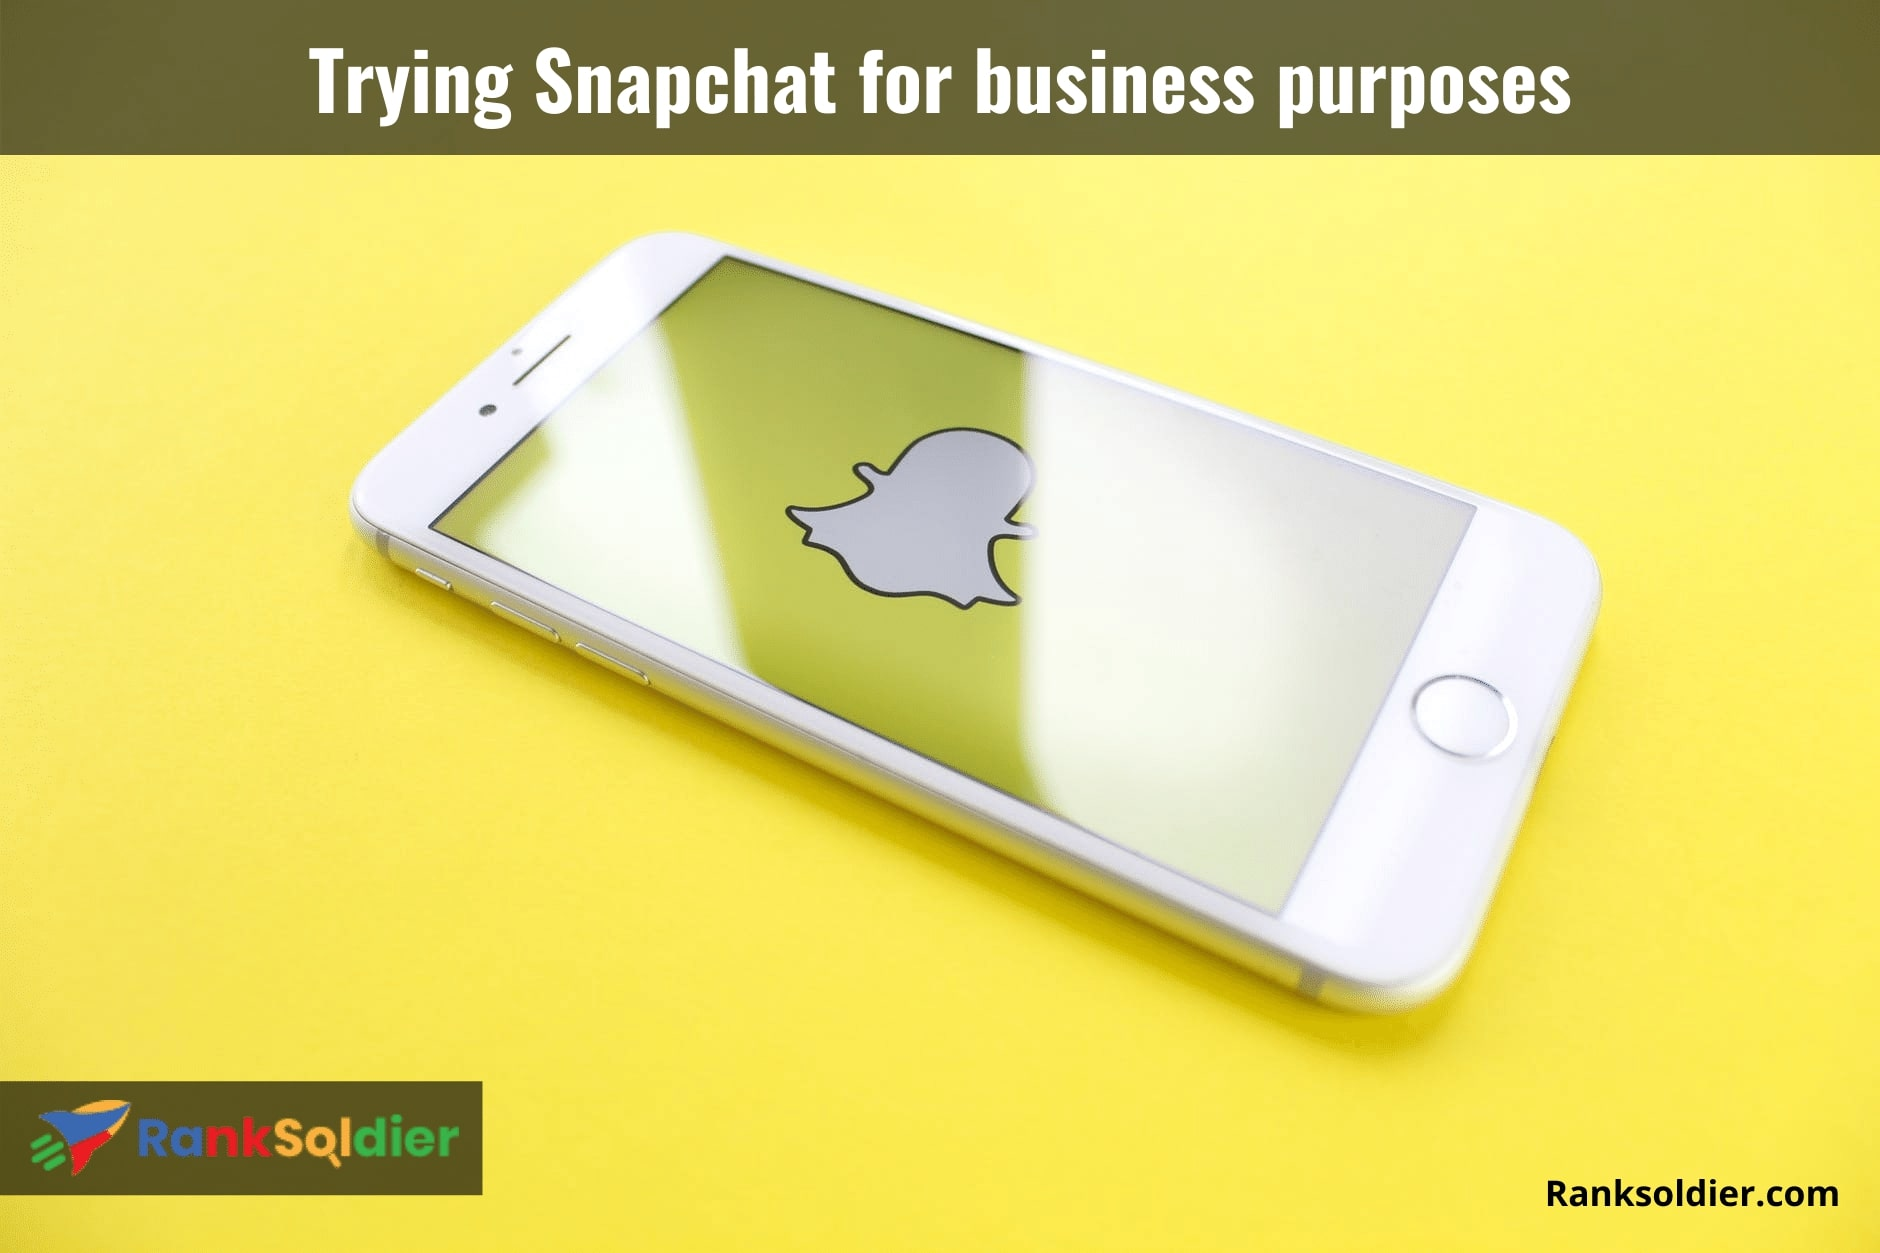 Trying Snapchat for business purposes